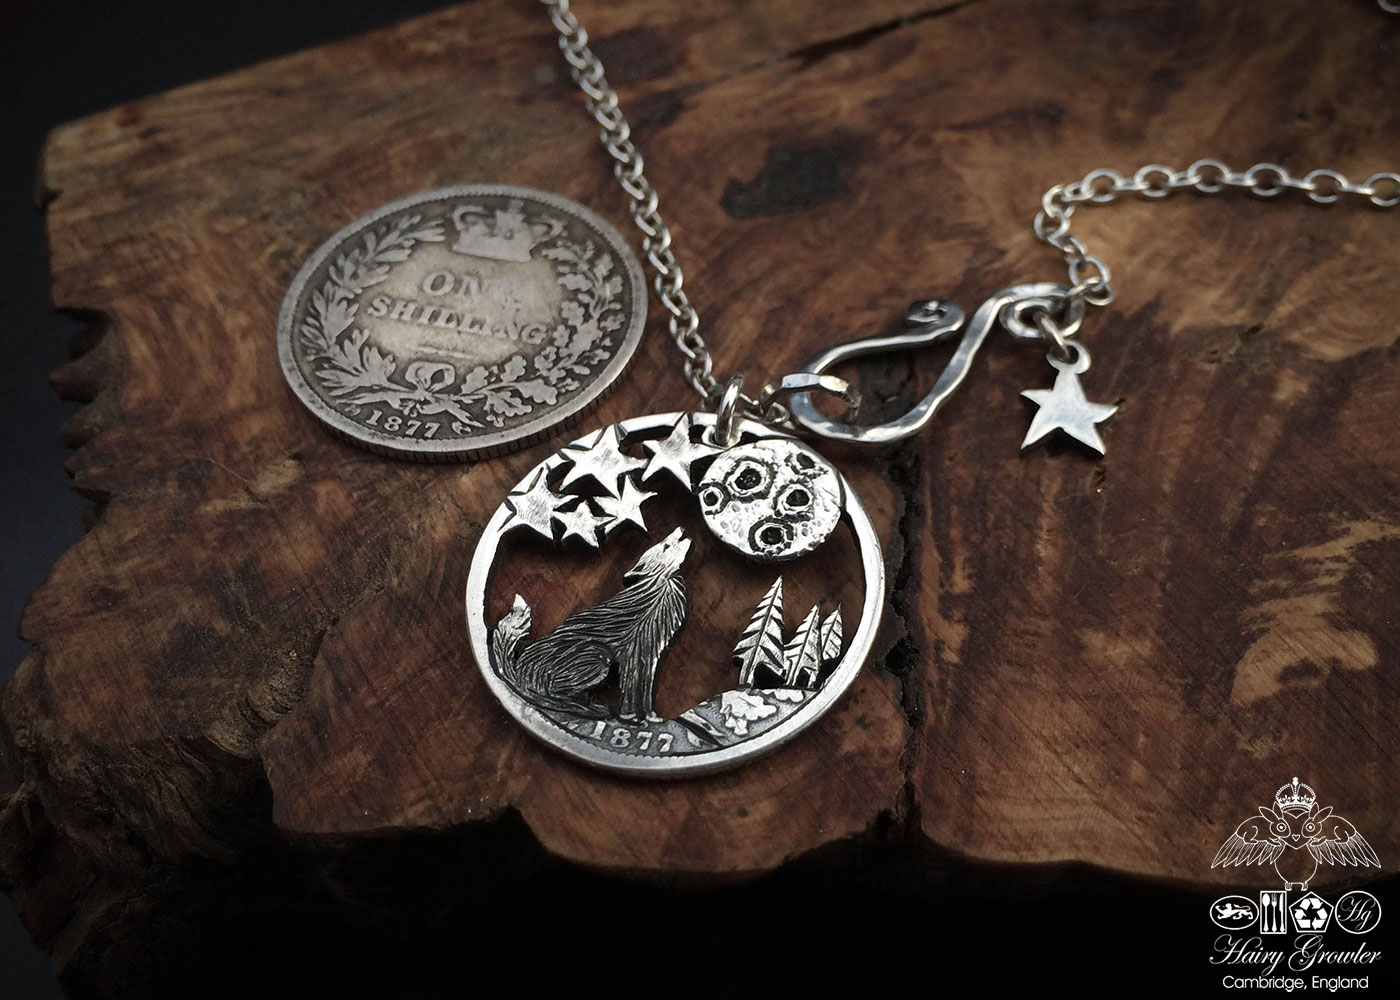 Handcrafted and recycled silver shilling The Silver Shilling collection. silver wolf necklace totally handcrafted and recycled from old sterling silver shilling coins. Designed and created by Hairy Growler Jewellery, Cambridge, UK. necklace